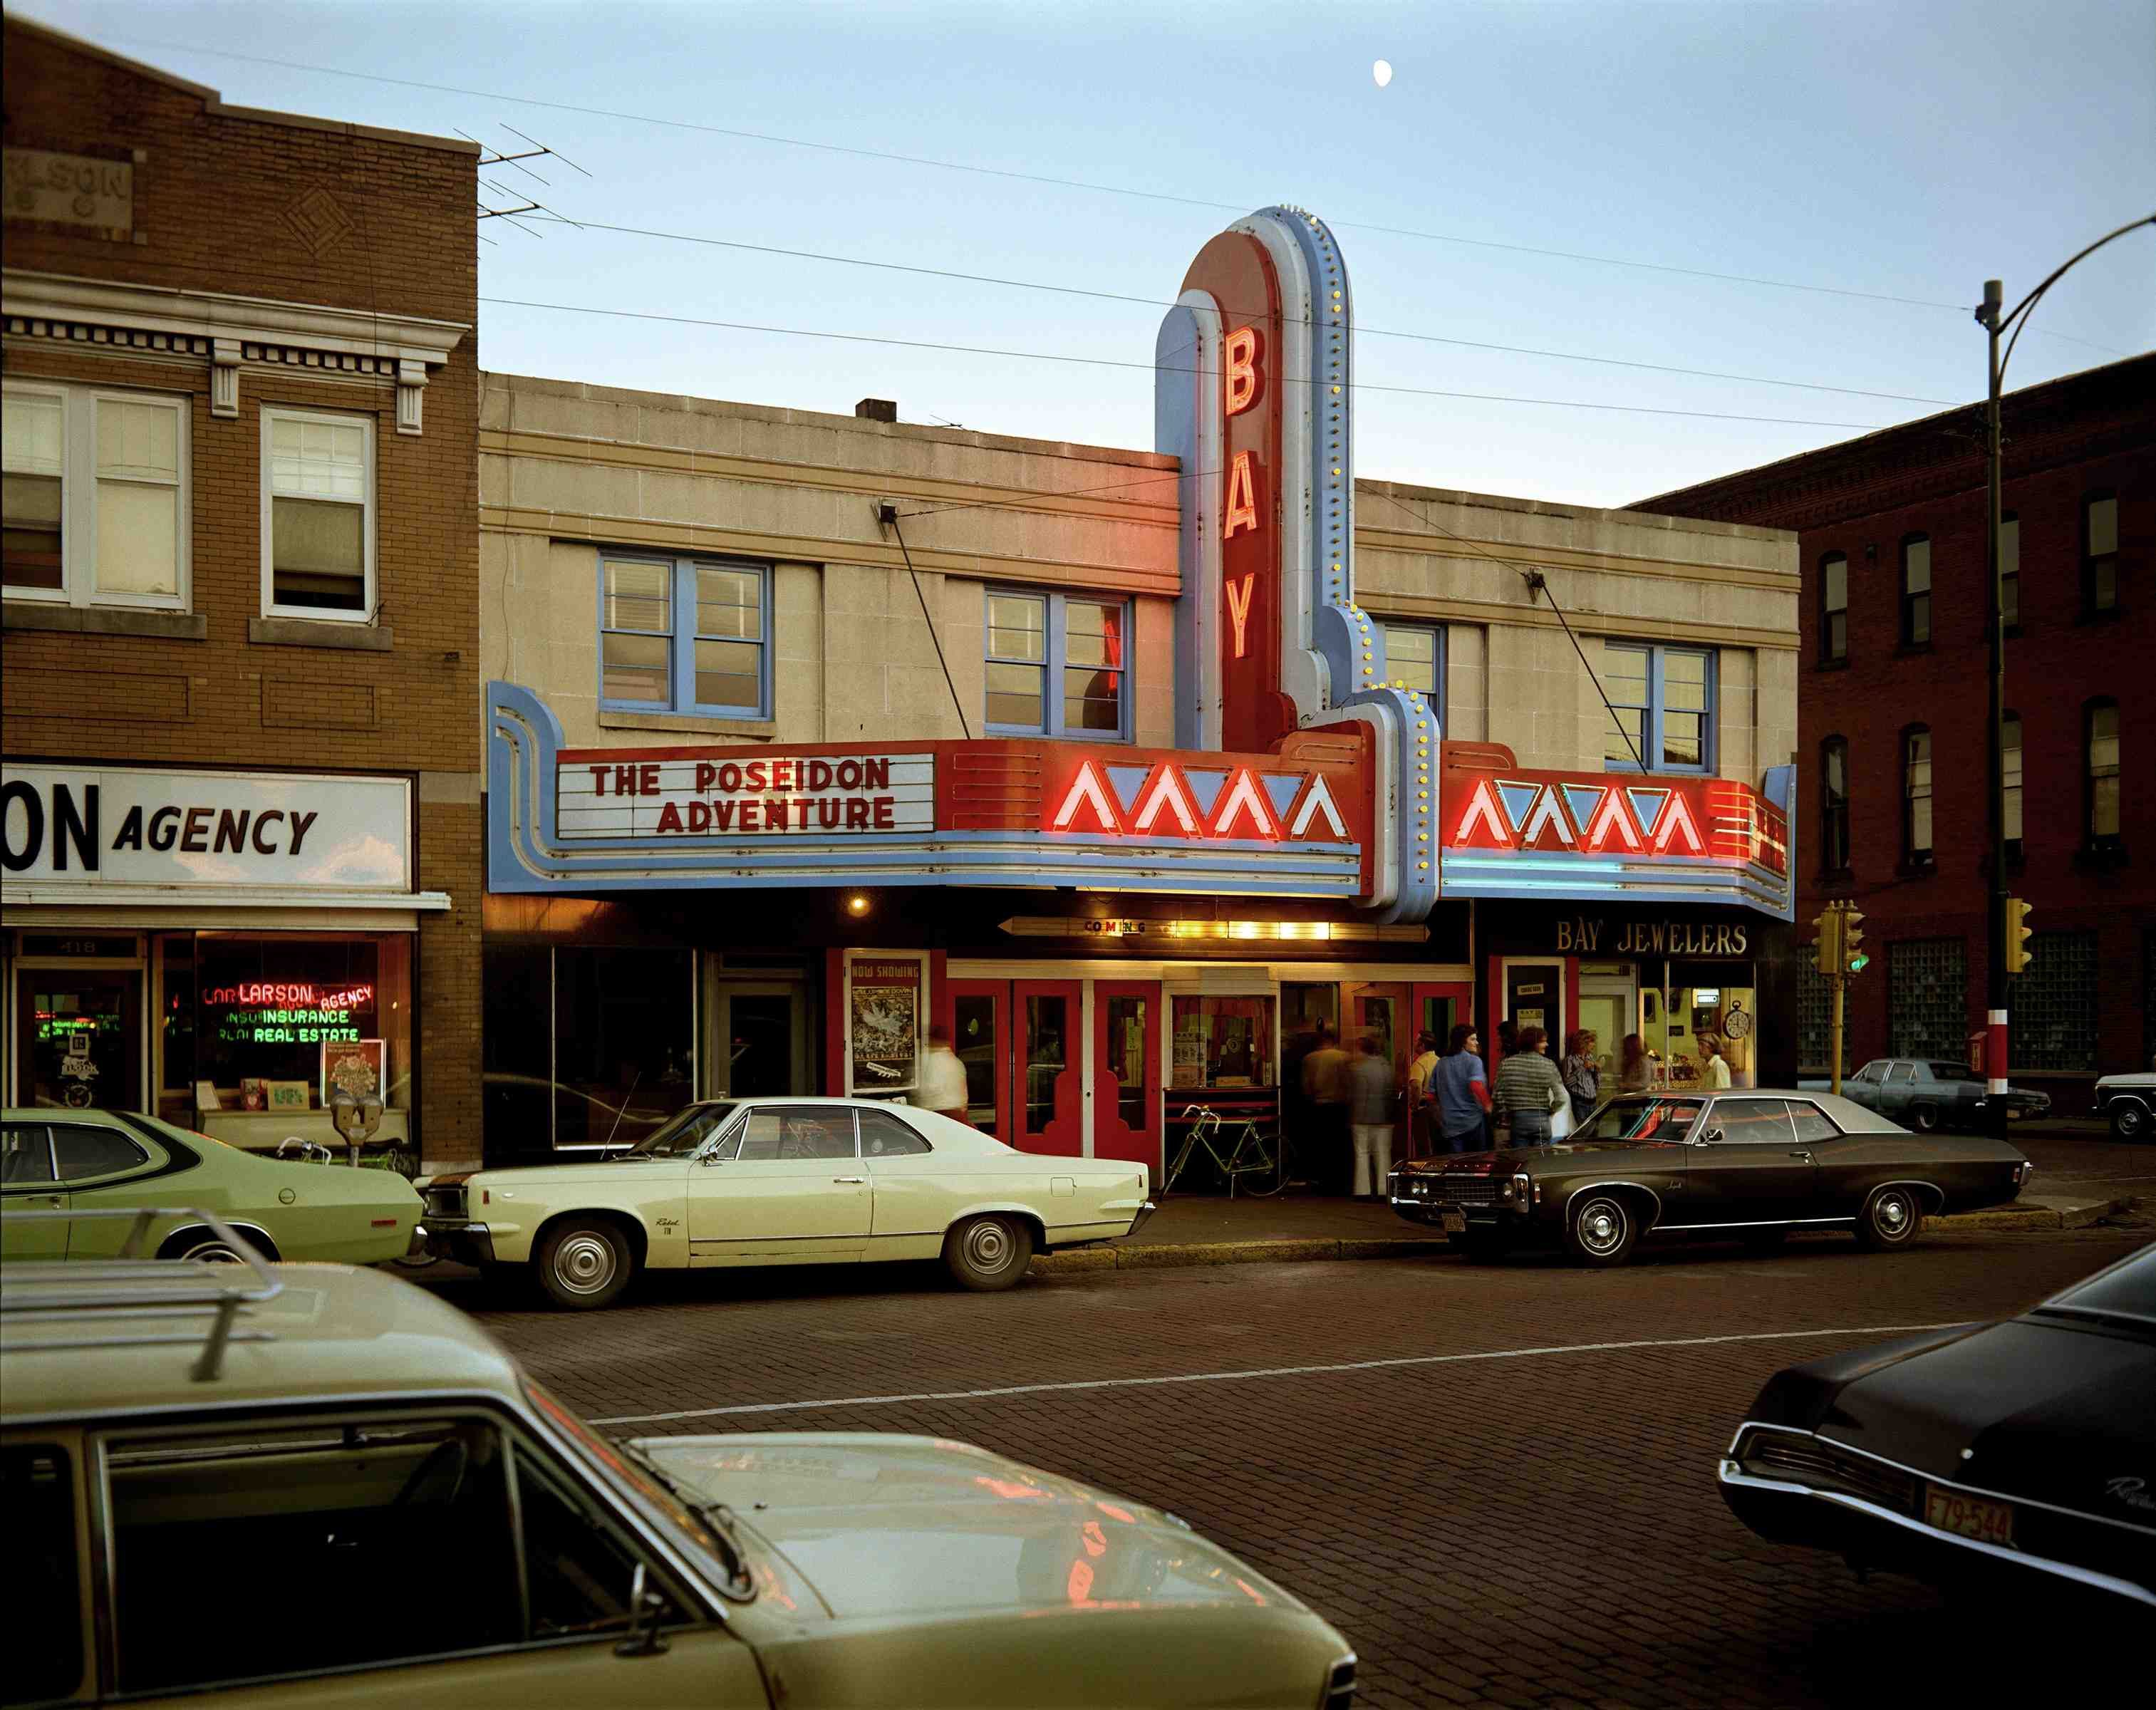 Second Street, Ashland, Wisconsin, July 9, 1973. 1973. Courtesy the artist. © 2017 Stephen Shore